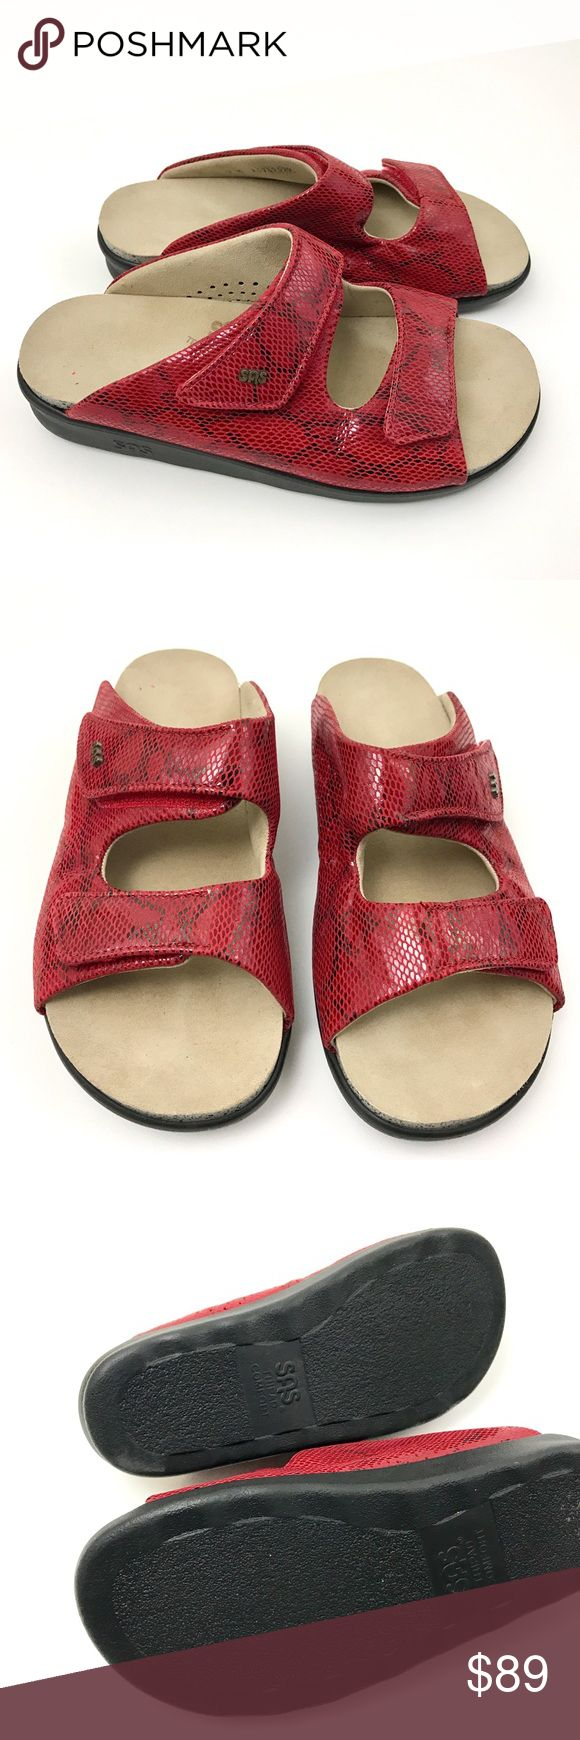 SAS Comfort Red Leather Animal Print Sandals SAS Comfort Sandals  Red Leather Animal Print Velcro Strap Women's Shoes Size 7 M  Pre Owned Sandals, in Excellent Shape No Holes, Stains Fading or Foot Imprints Original Box is Not Included     Item comes from a pet free/smoke free clean environment please contact me for any additional questions SAS Comfort Shoes Sandals